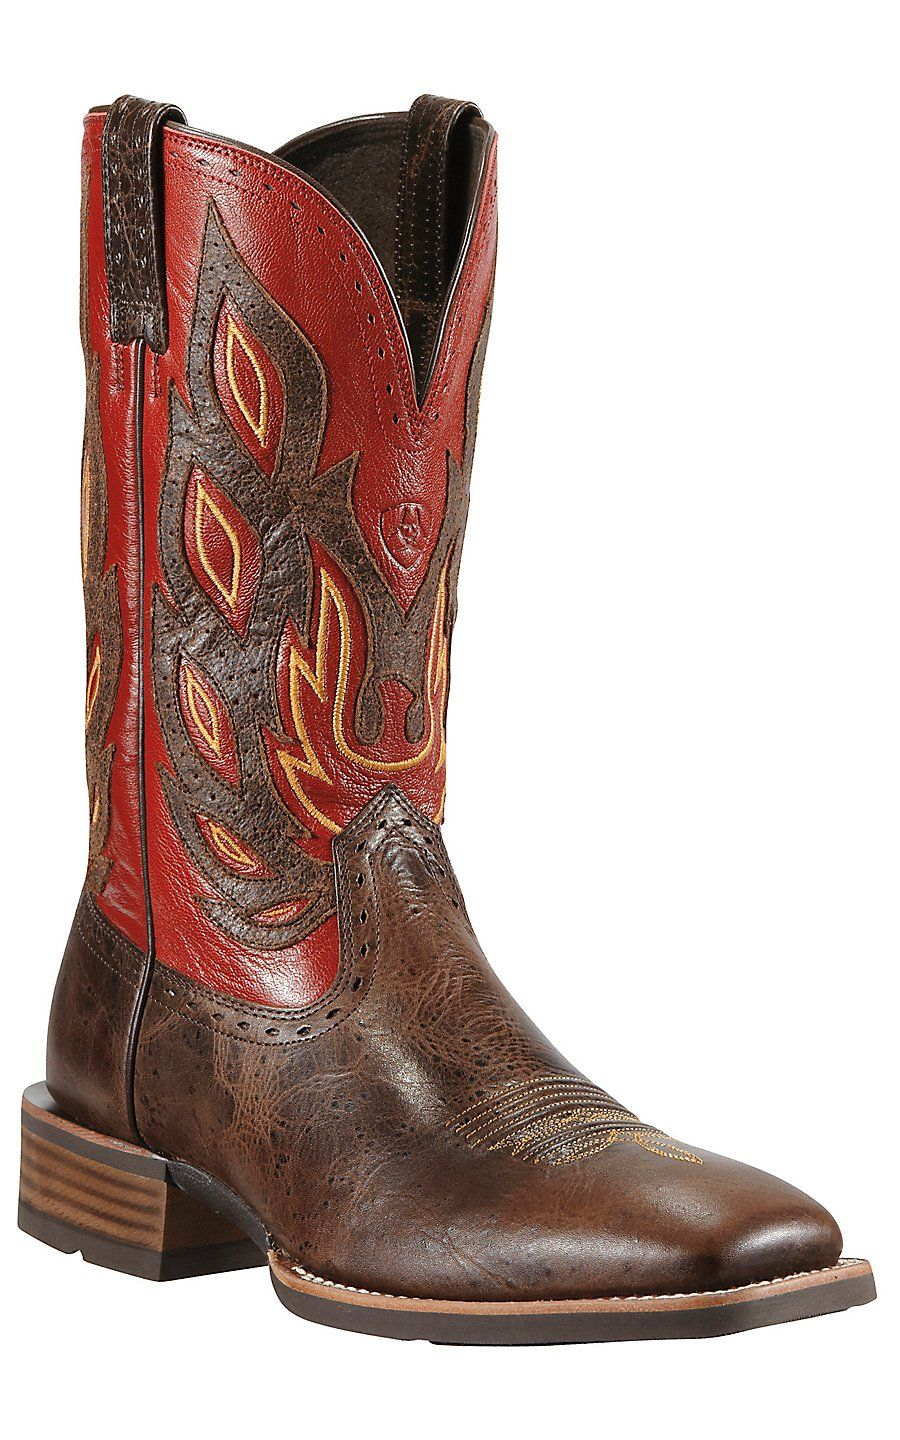 1a4918af0 Ariat Nighthawk Men's Thunder Brown with Red Top Double Welt Square Toe  Cowboy Boot